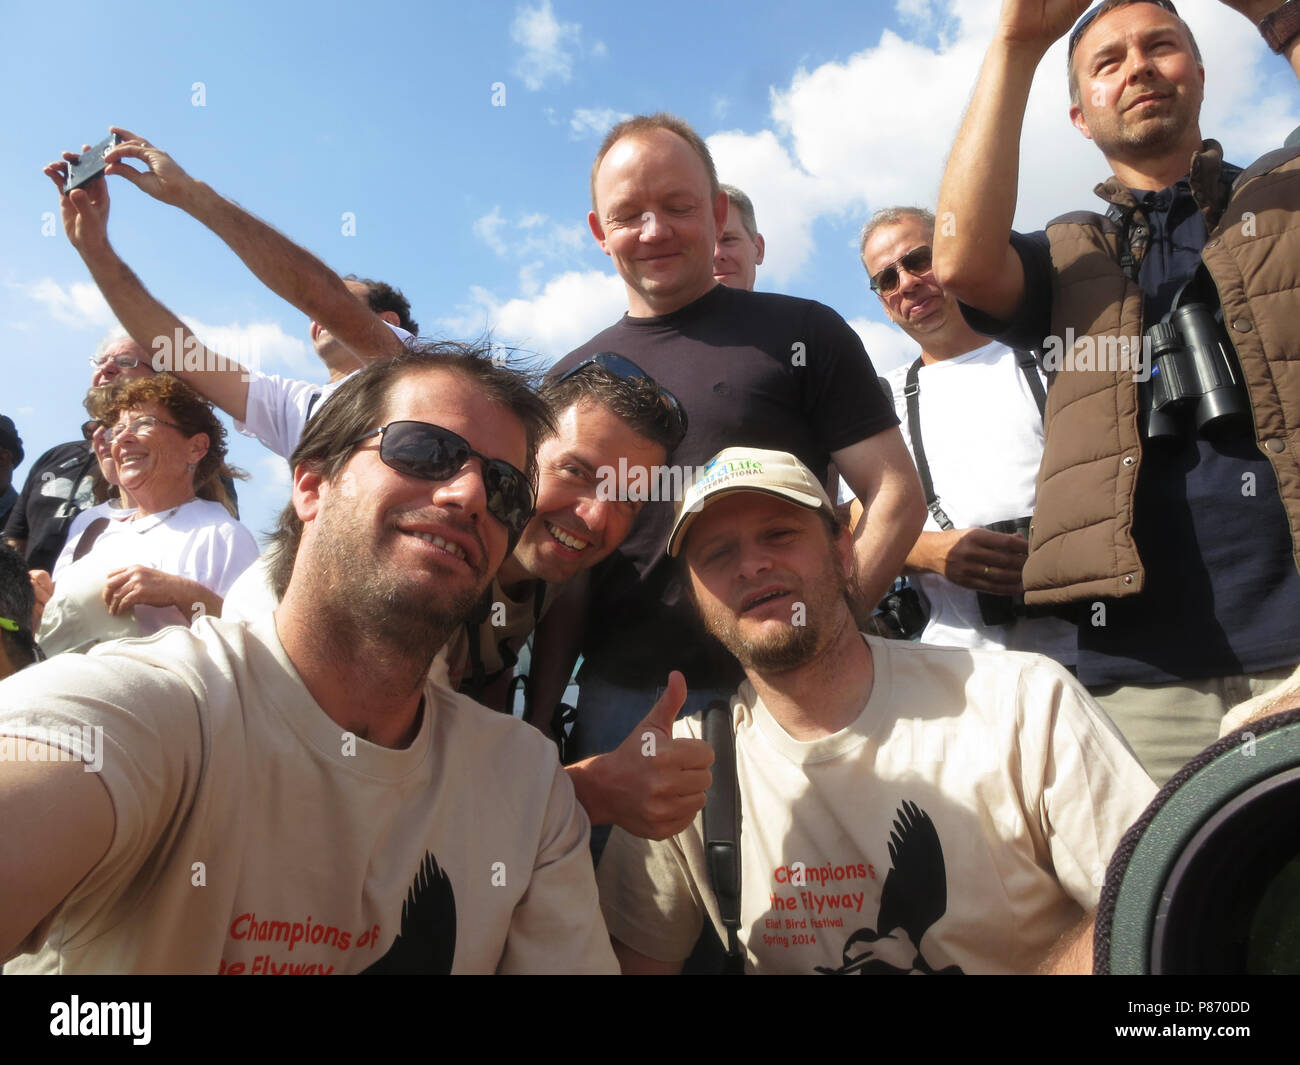 Team Focusing on Wildlife Sprinters, Champions of the Flyway, Eilat, 2014 - Stock Image